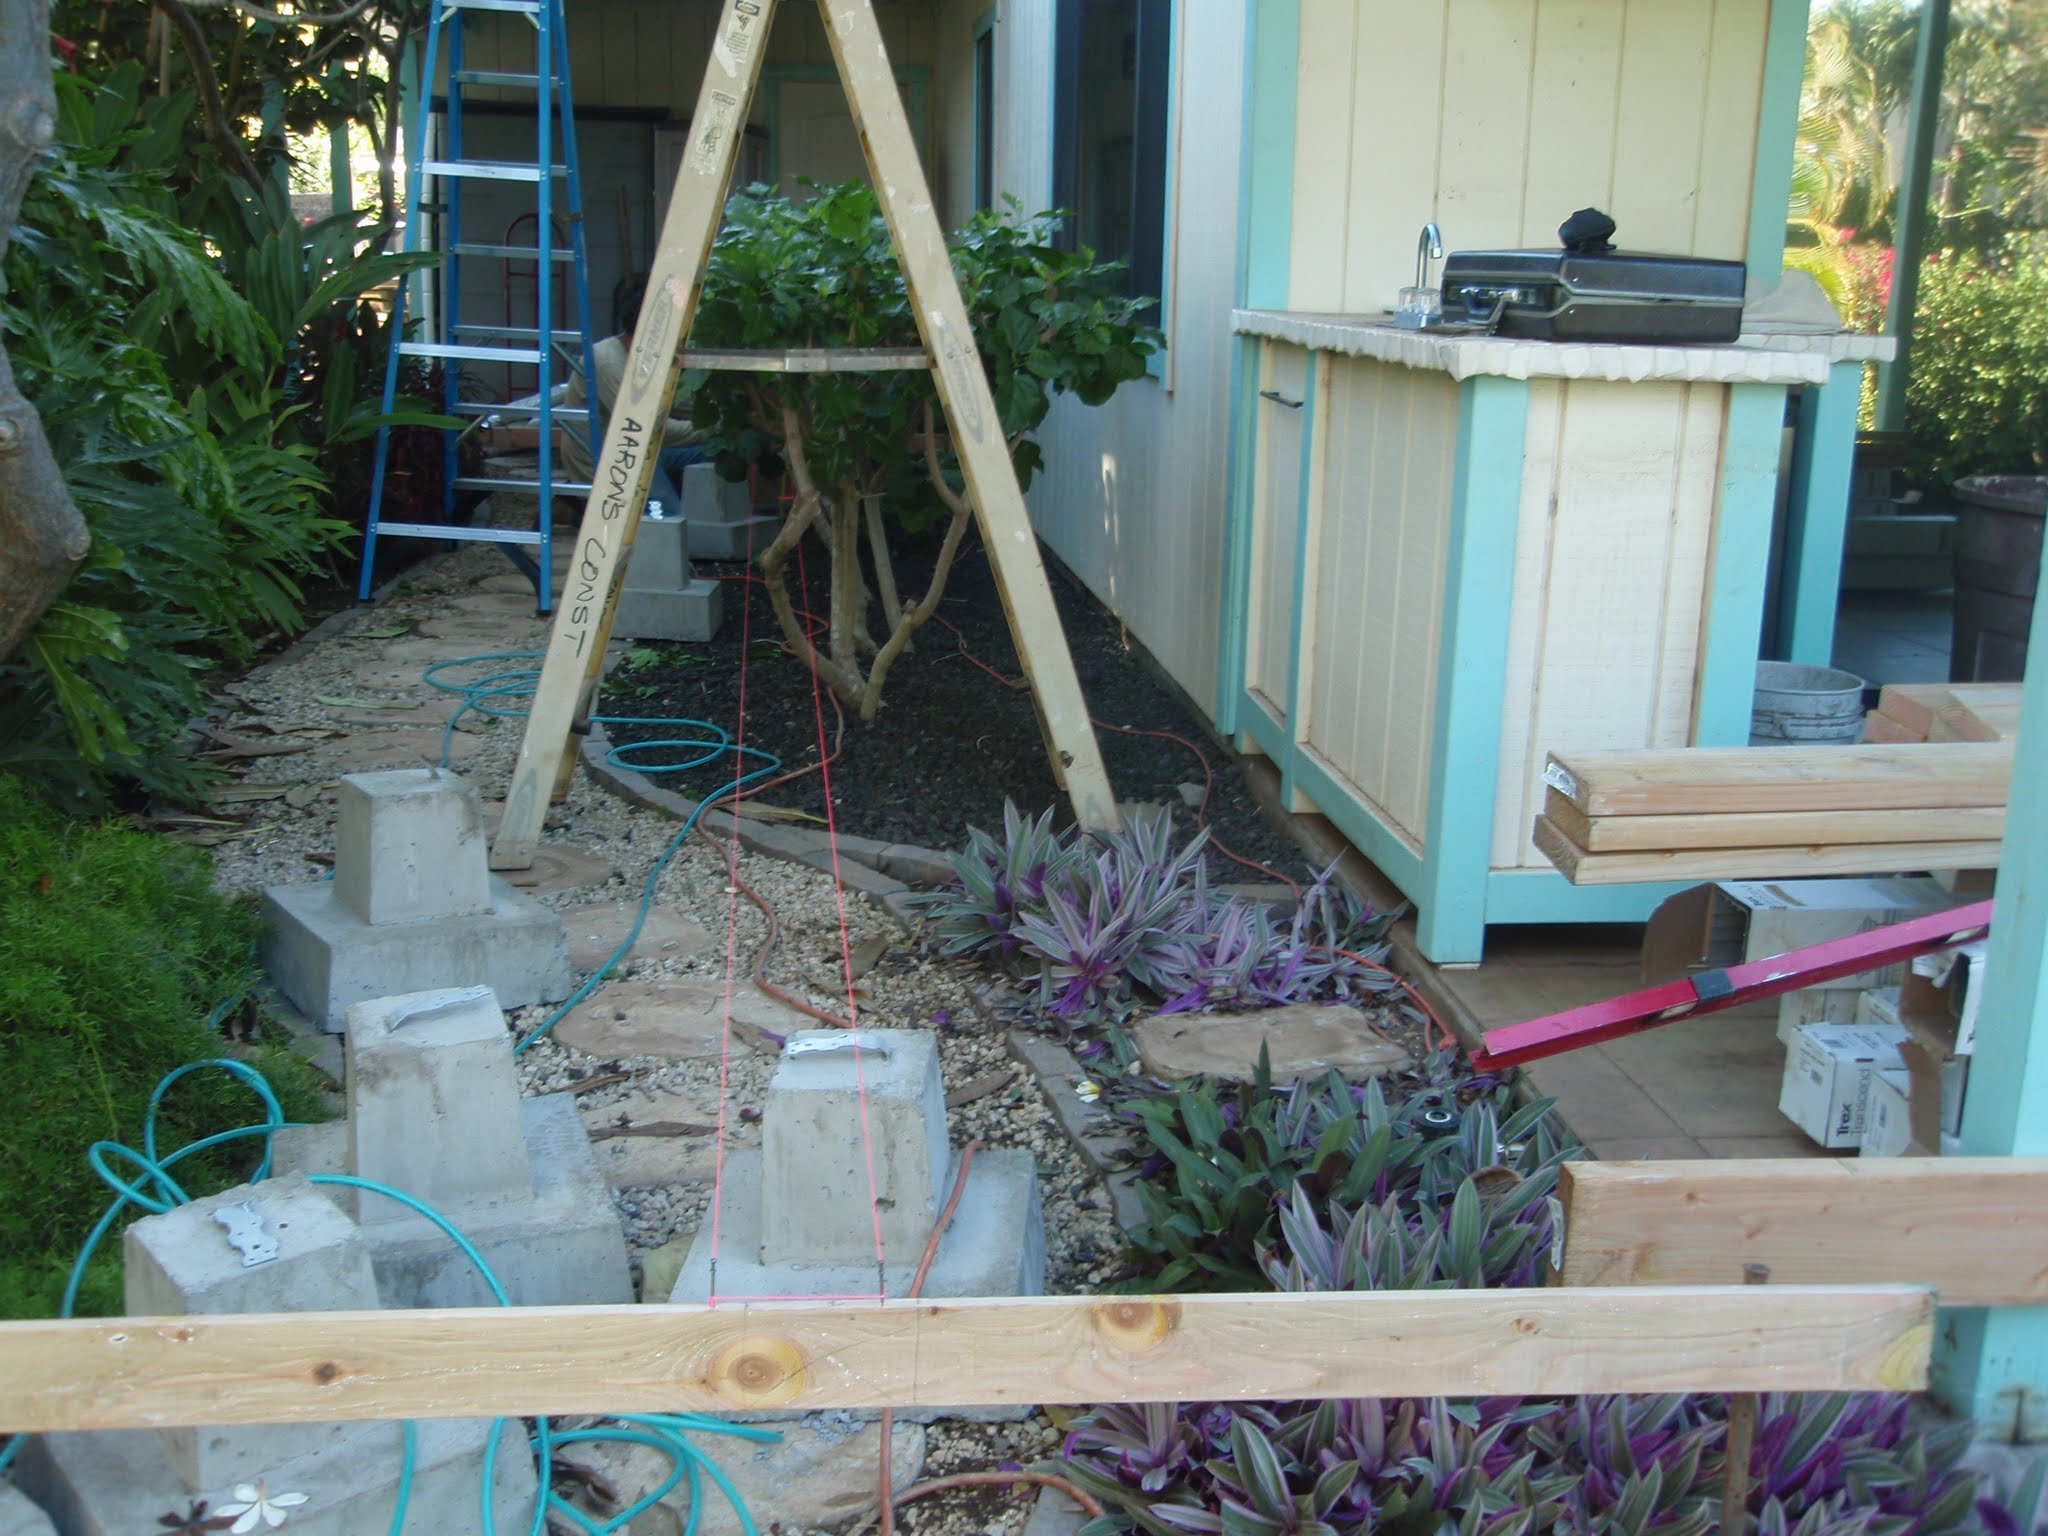 FMHA footing foundation blocks for the bridge supports & the stair landing supports